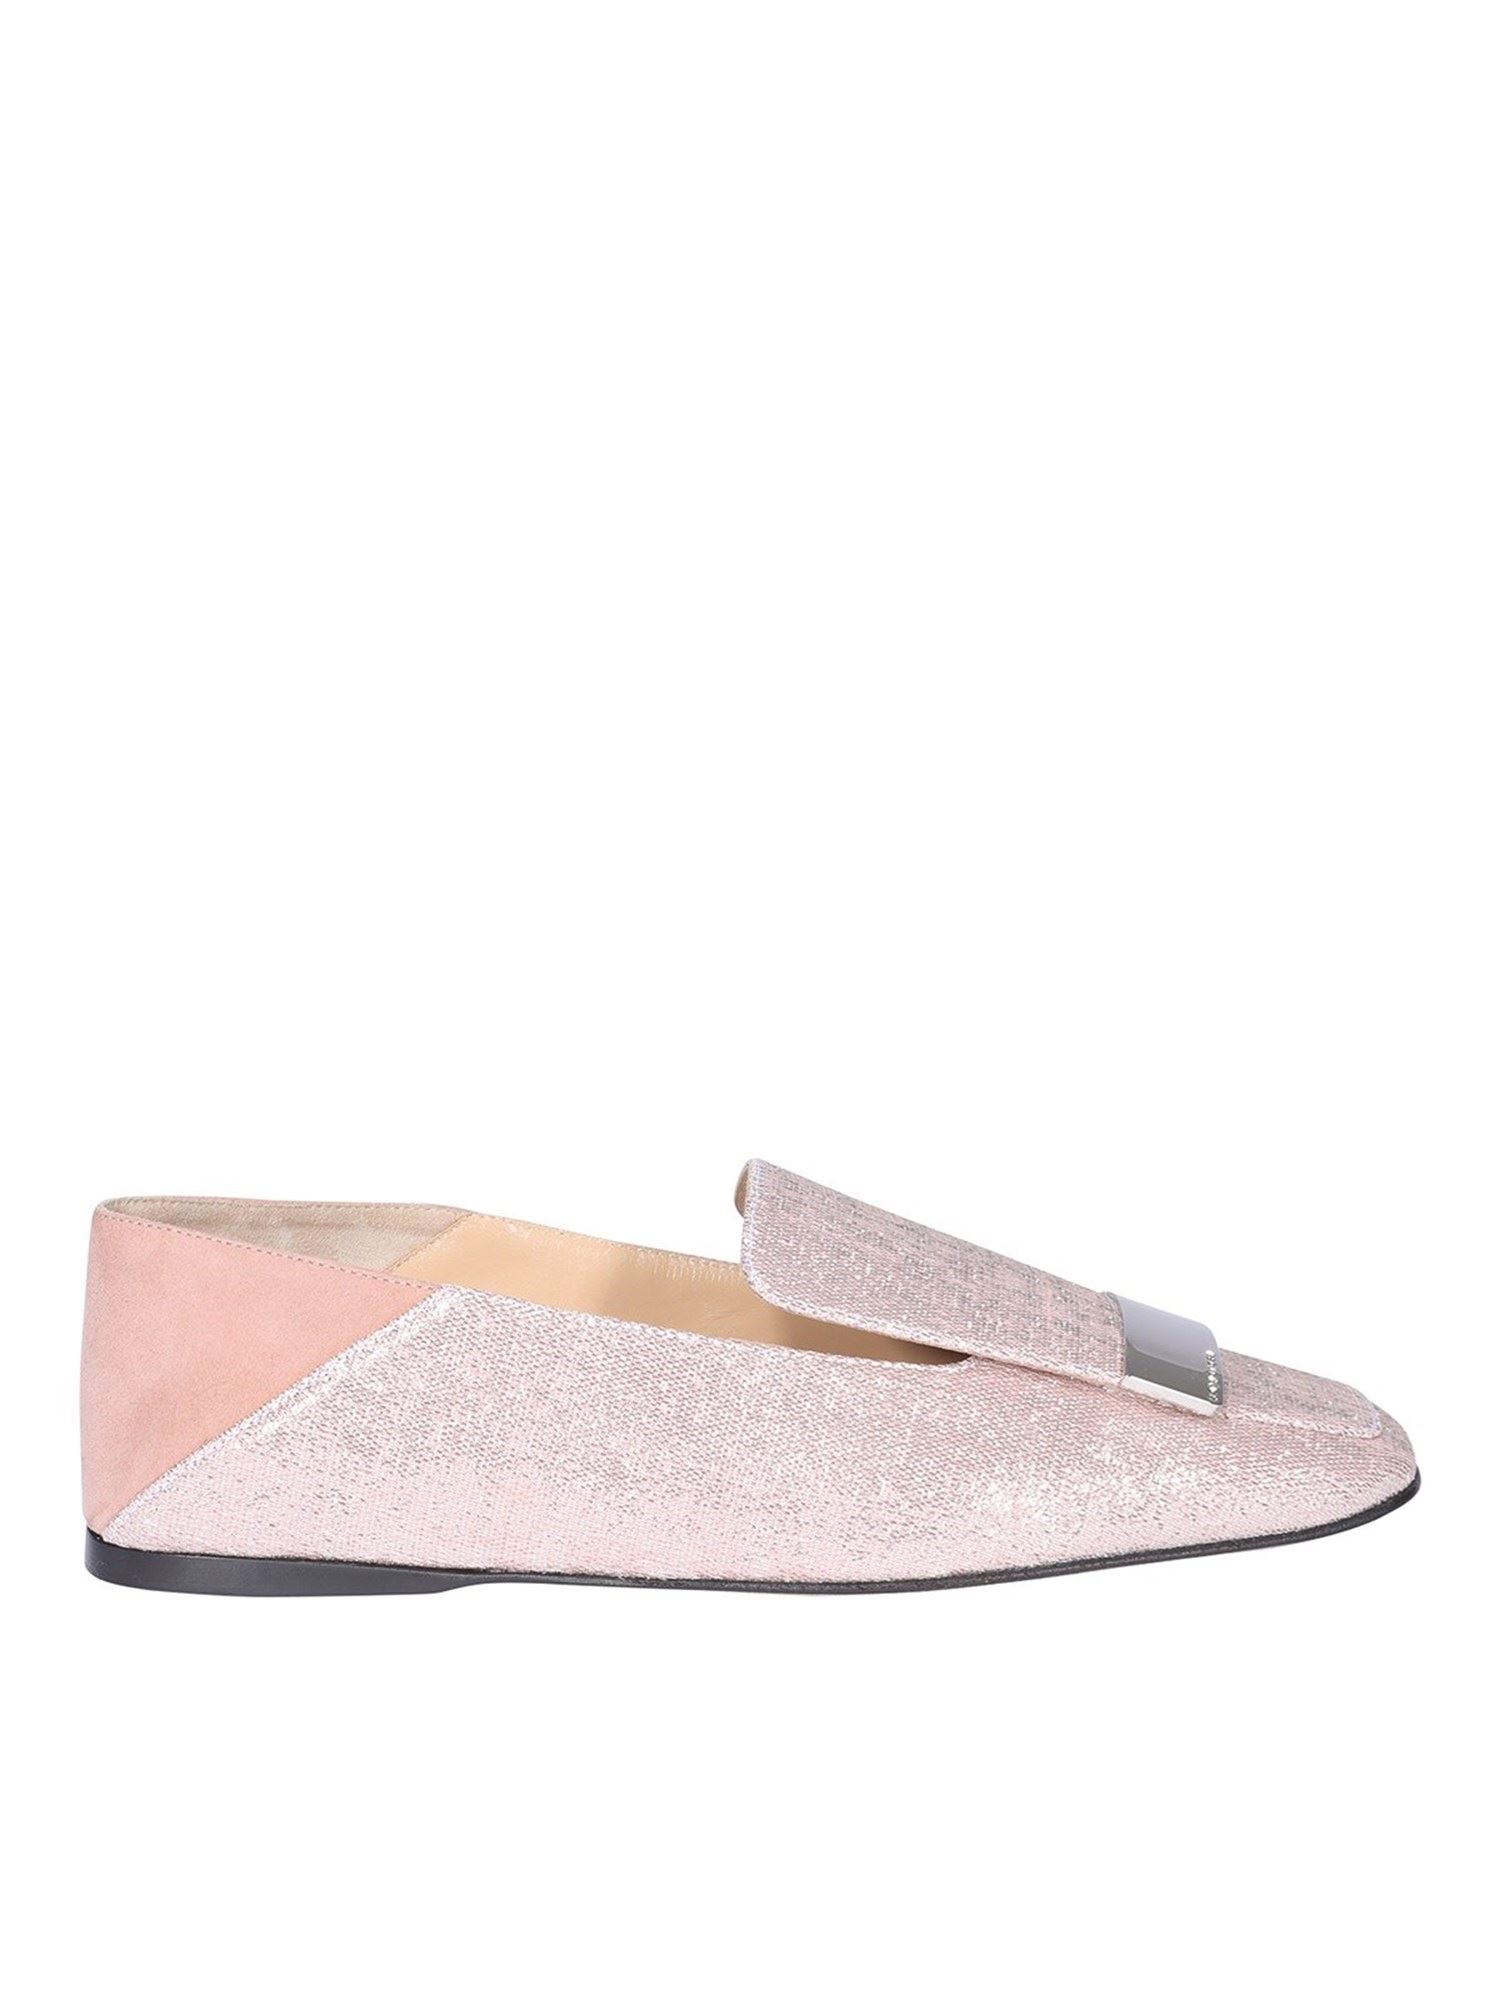 Sergio Rossi SR1 LOAFERS IN PINK